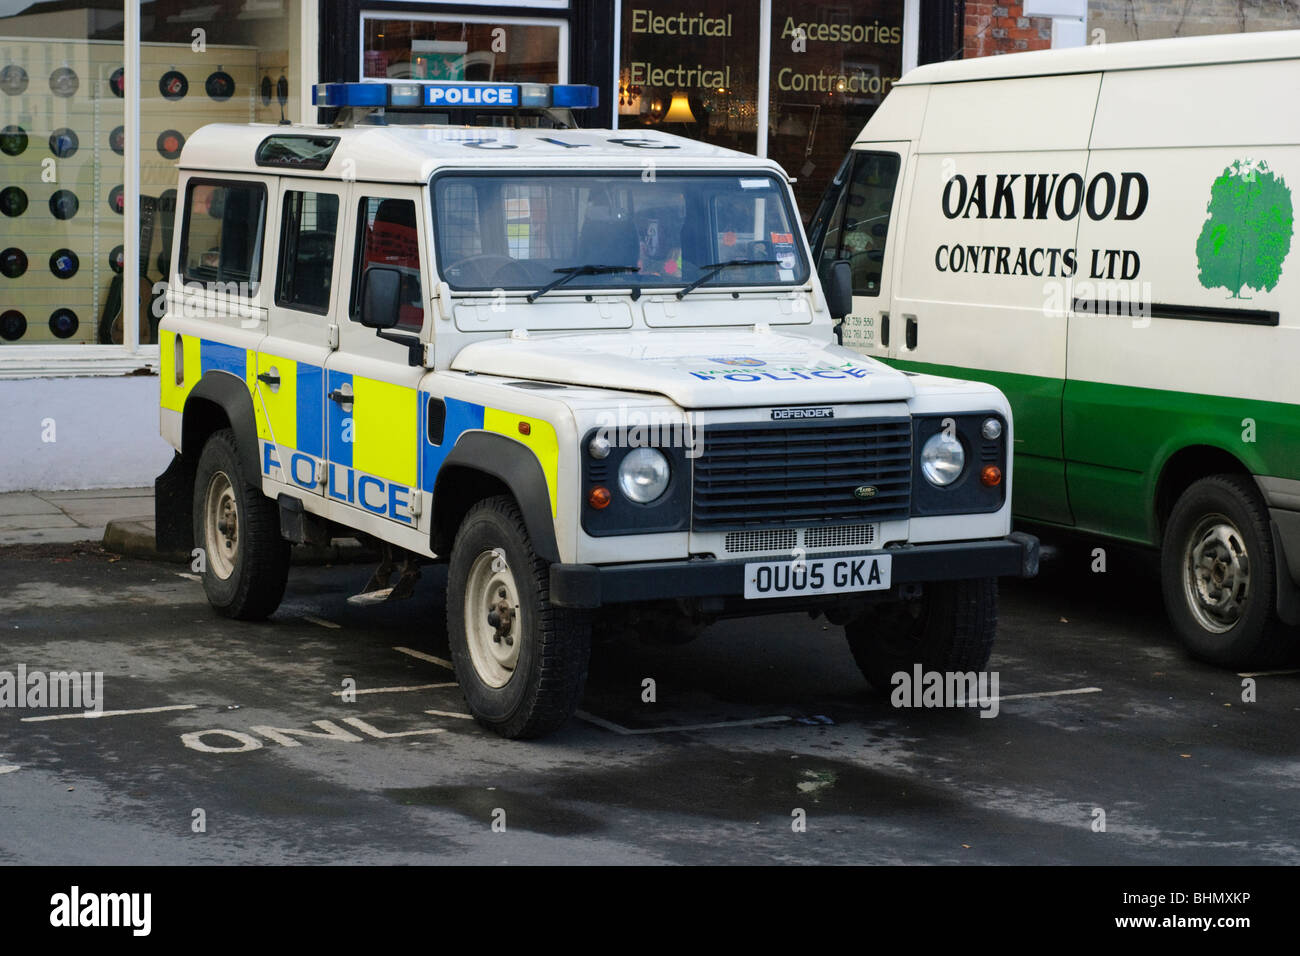 Thames Valley Police Land Rover parked in Wantage Market Place, Oxfordshire. - Stock Image